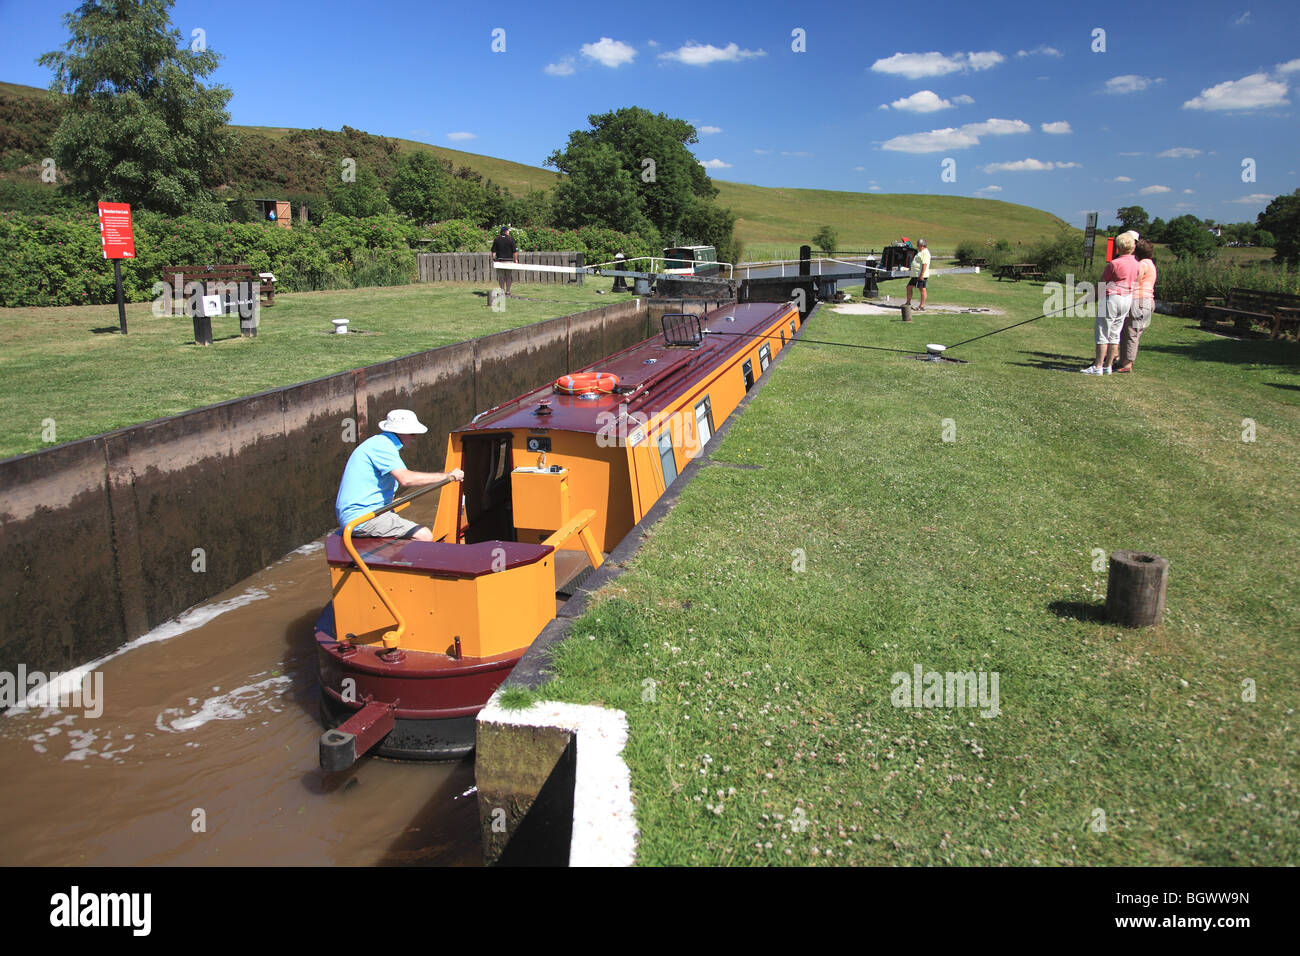 Beeston Iron Lock on the Shropshire Union Canal, made of large iron sheets, was built in 1828. - Stock Image